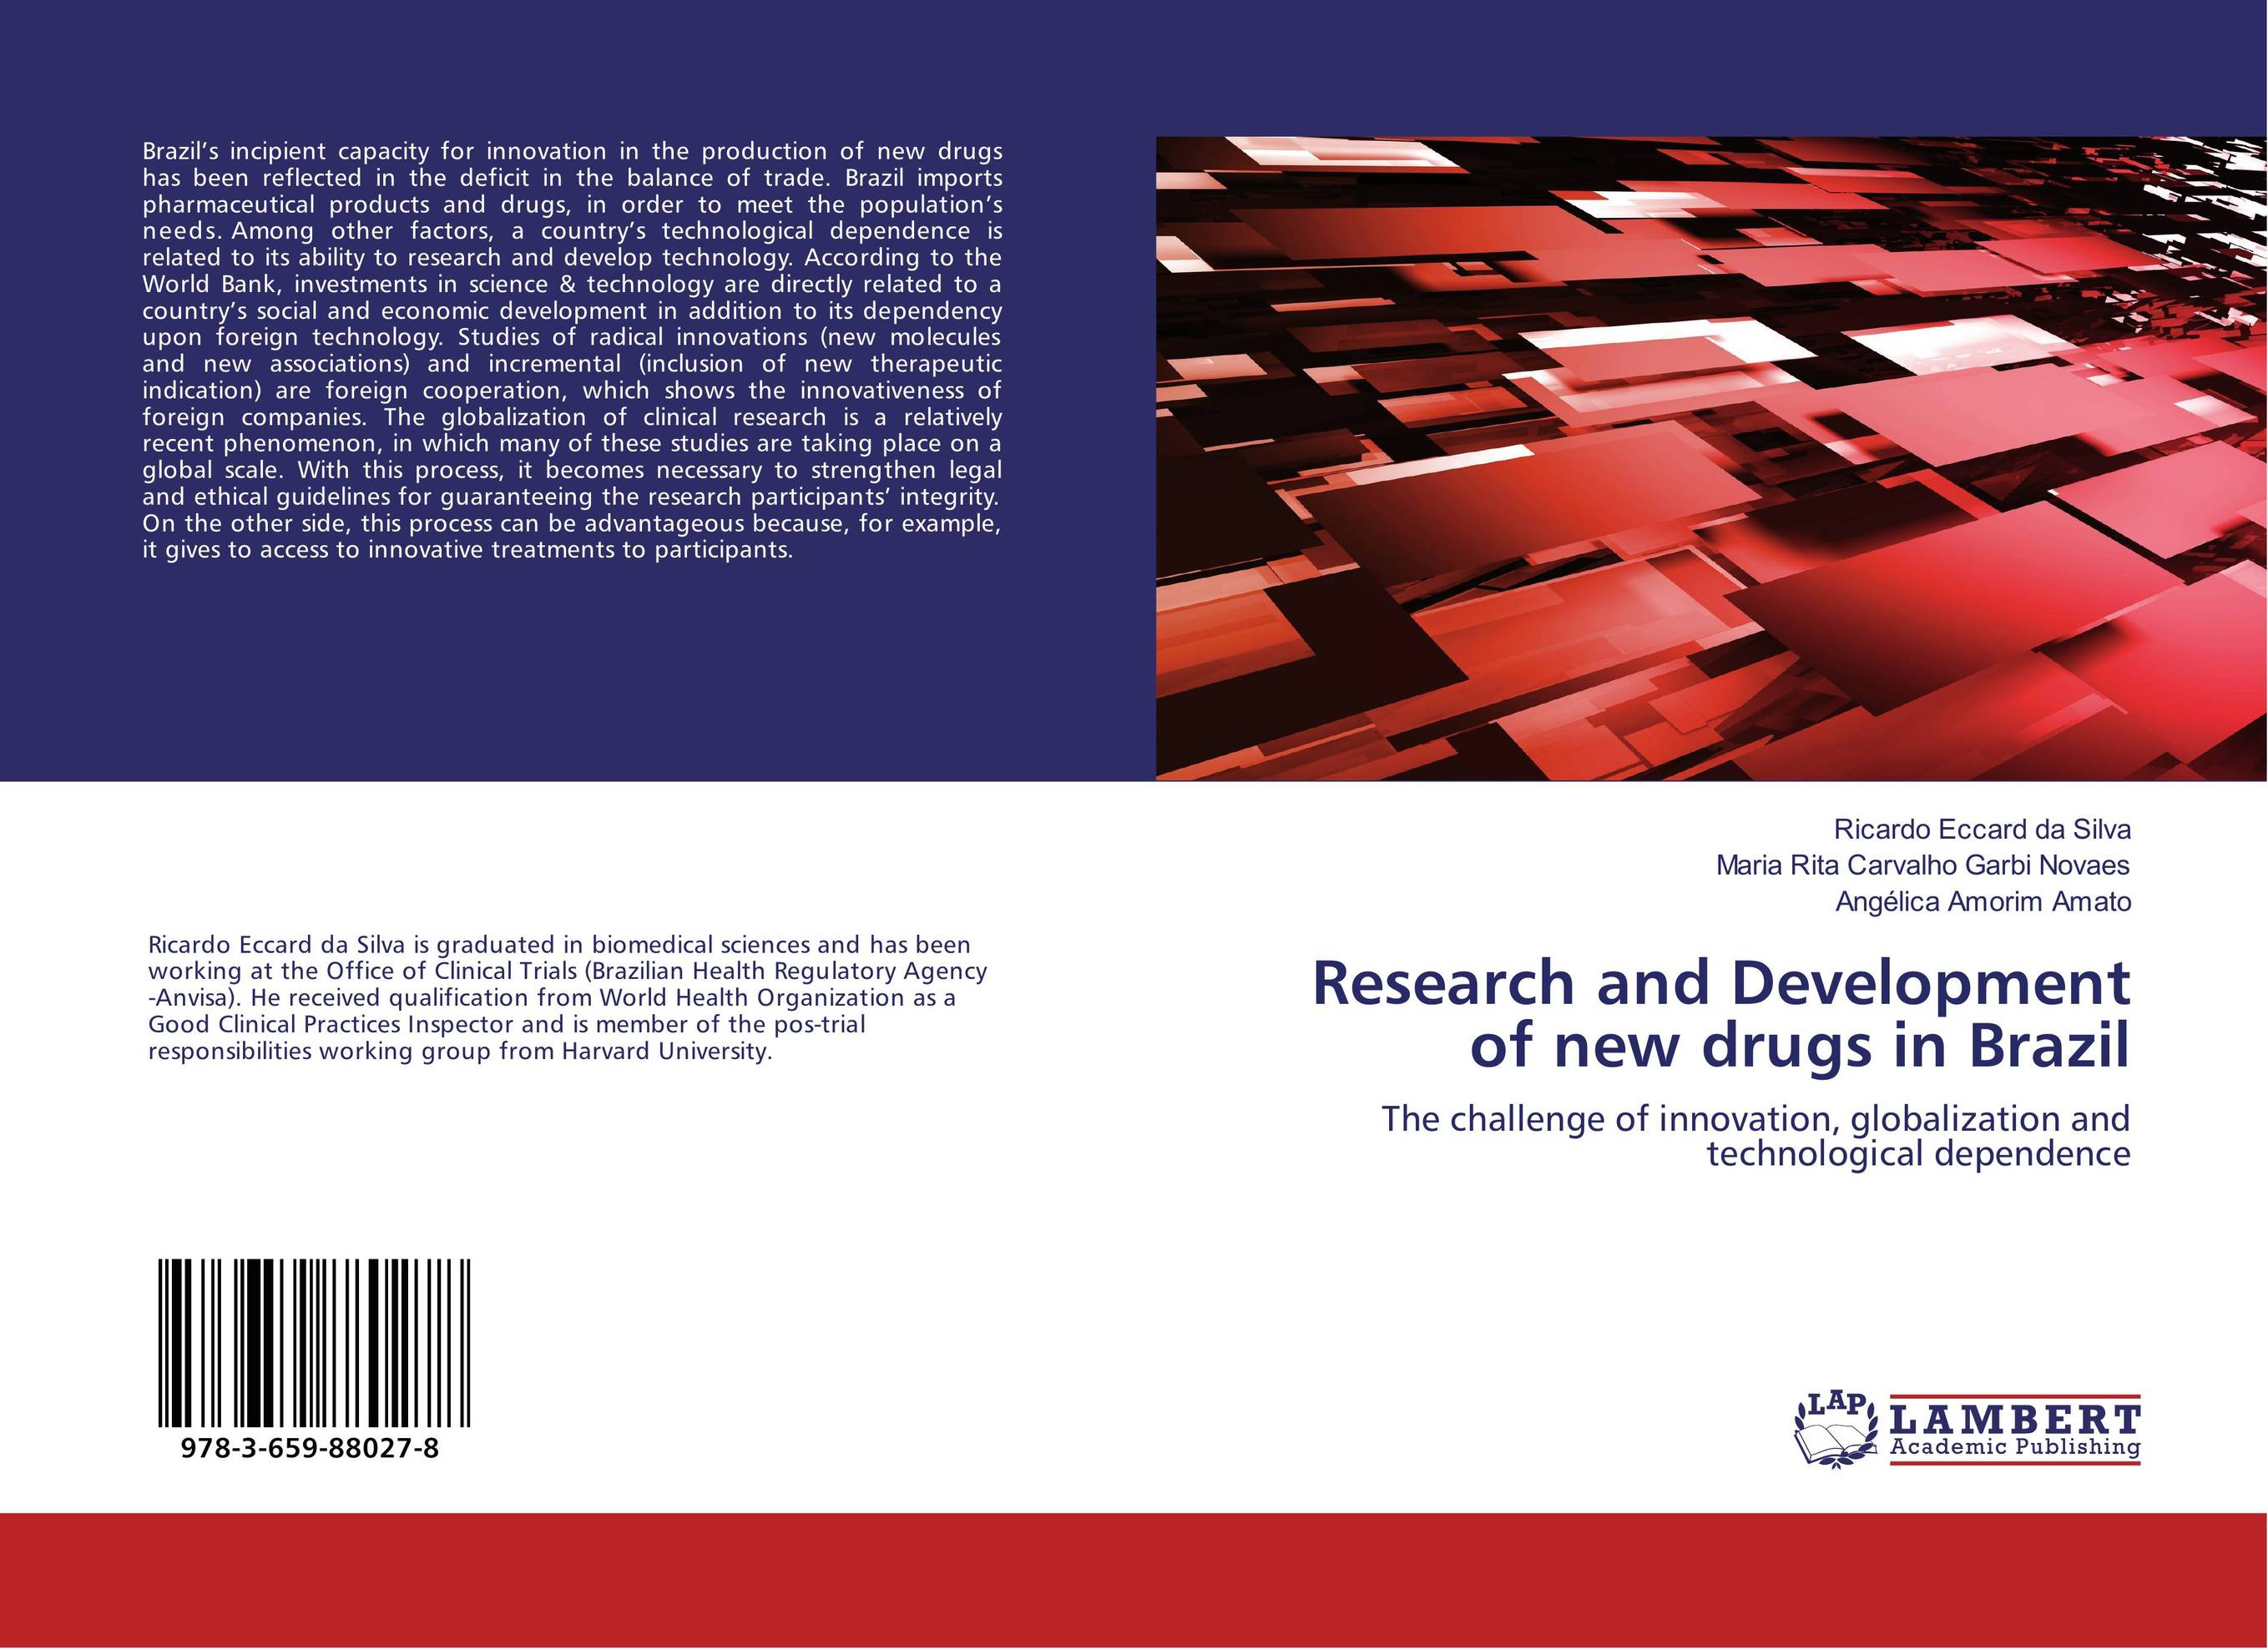 Research and Development of new drugs in Brazil